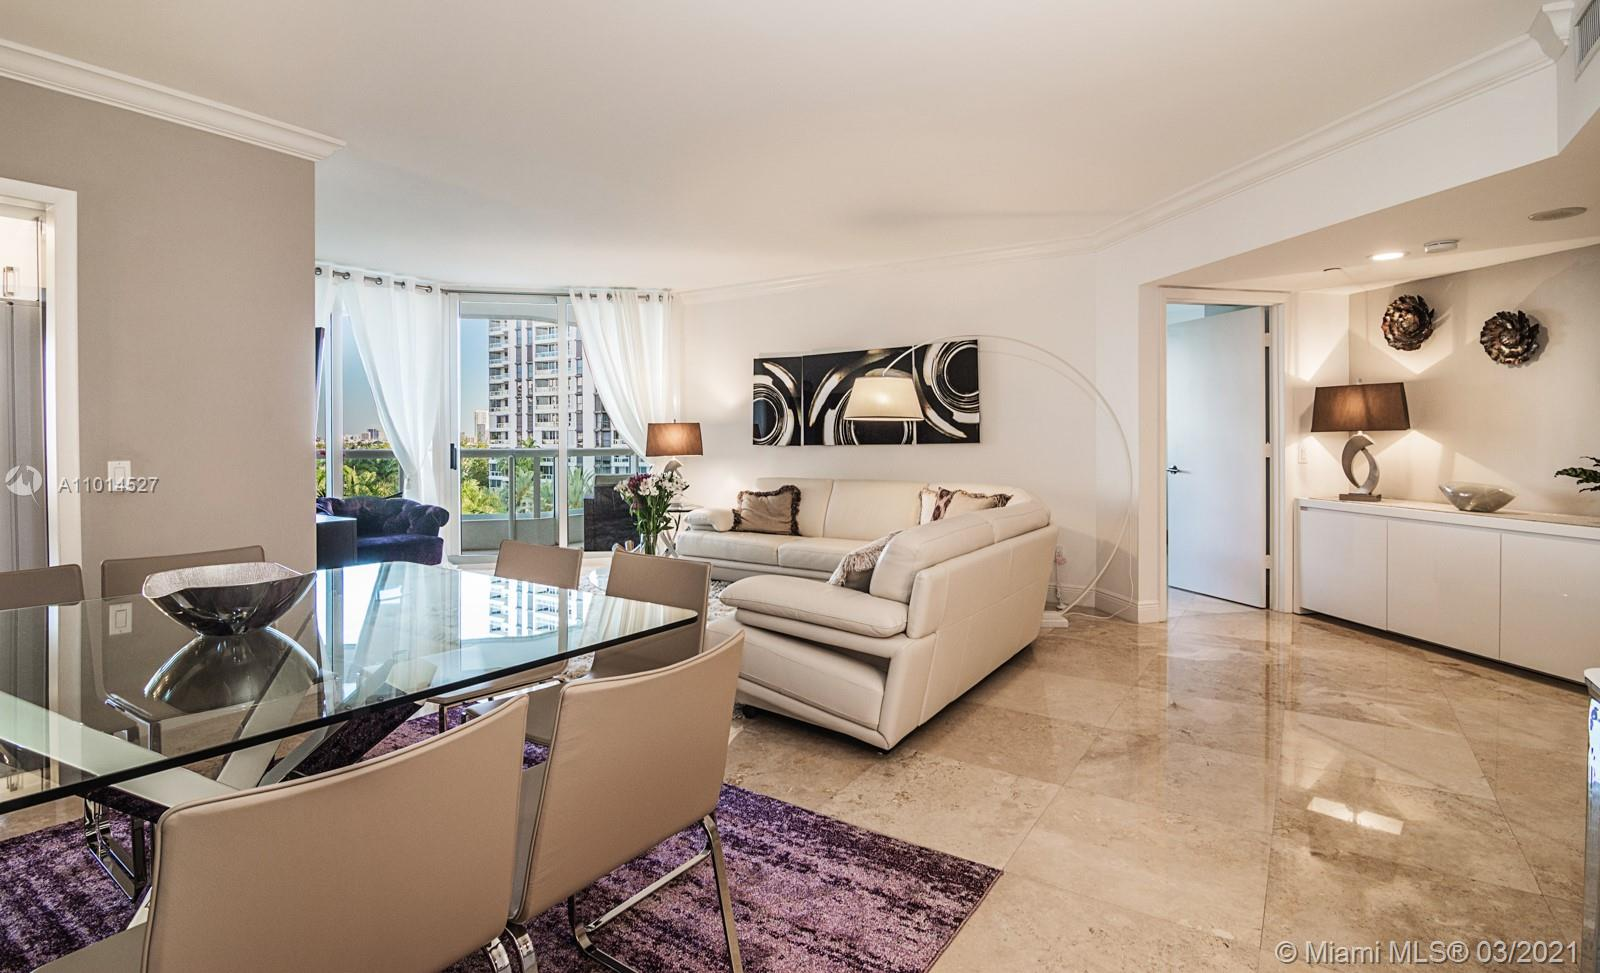 South Tower at the Point #706 - 21055 YACHT CLUB DR #706, Aventura, FL 33180